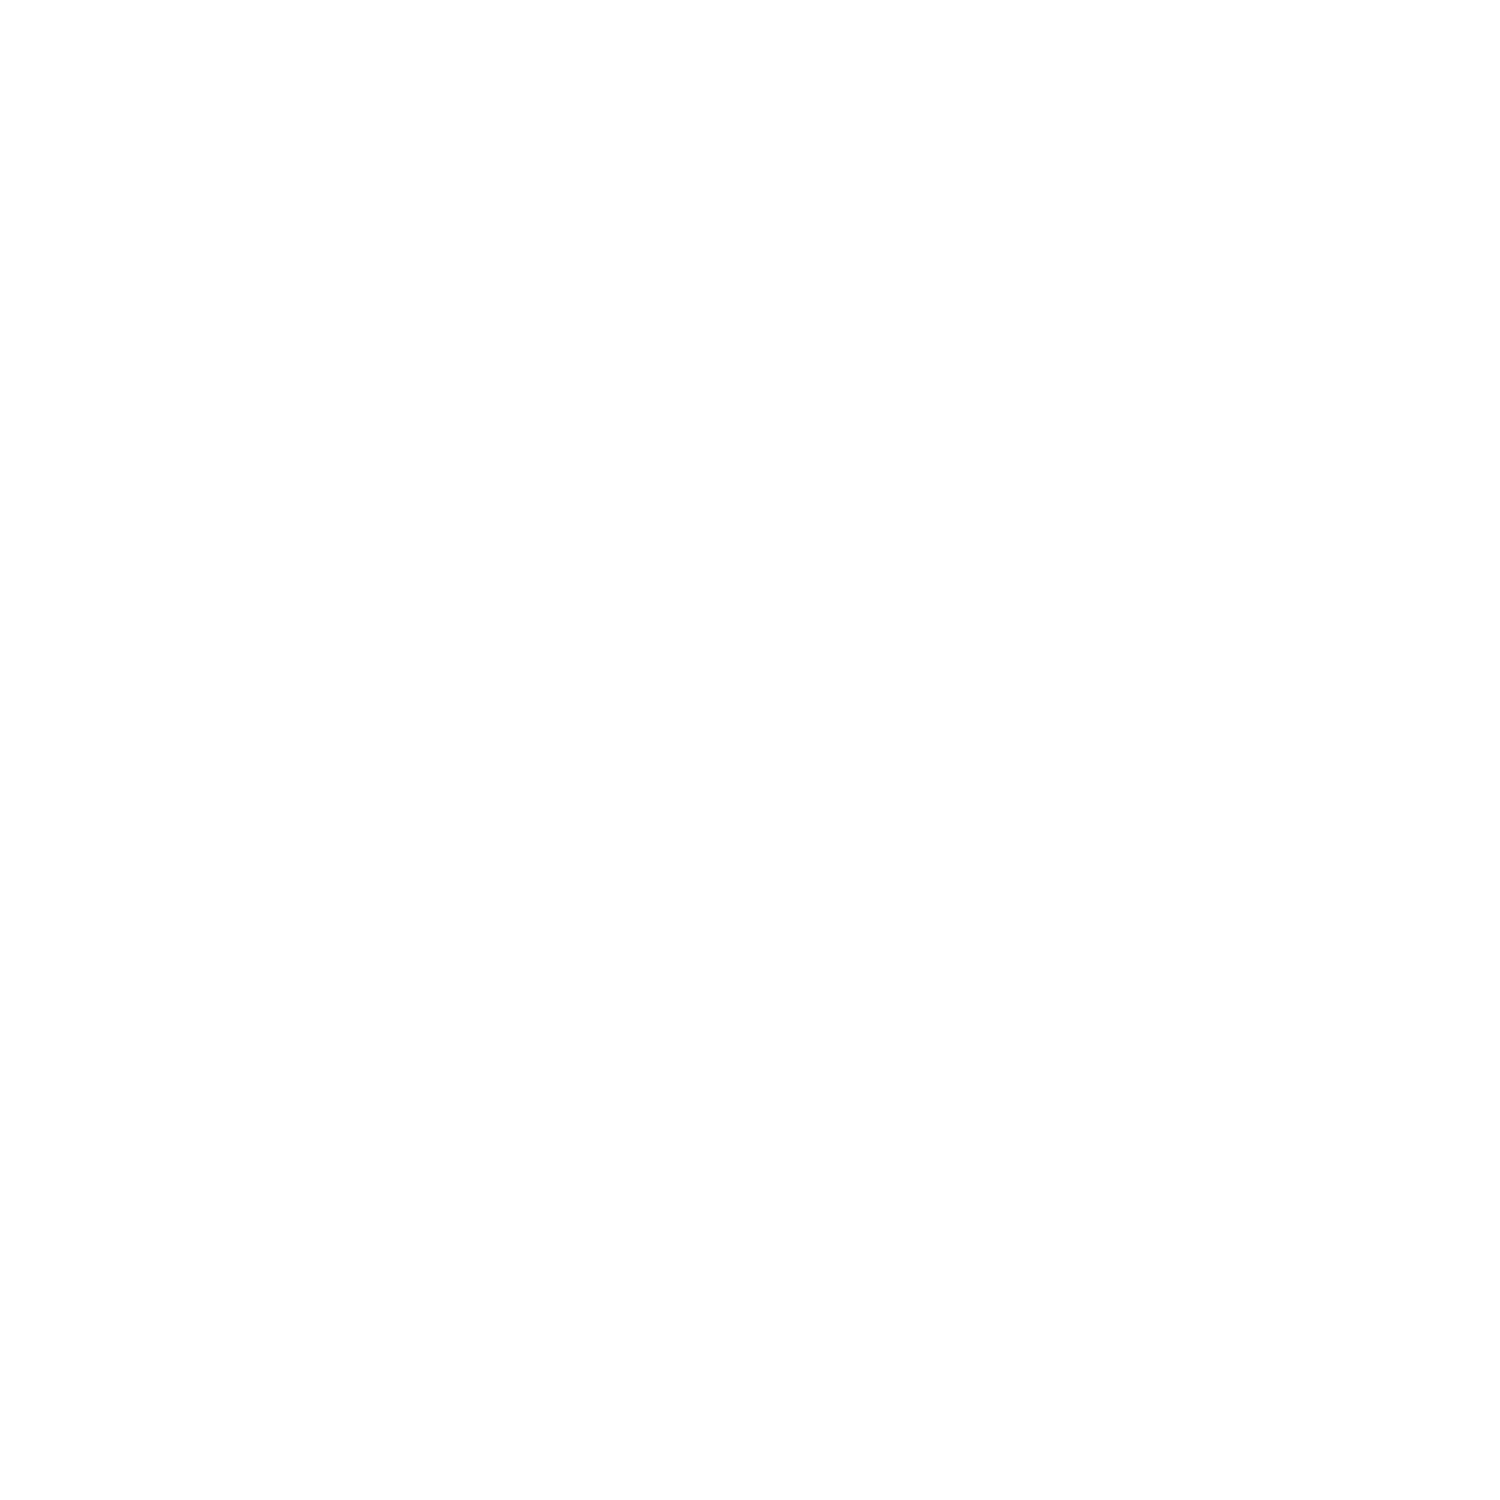 World Fare Street Food and Catering